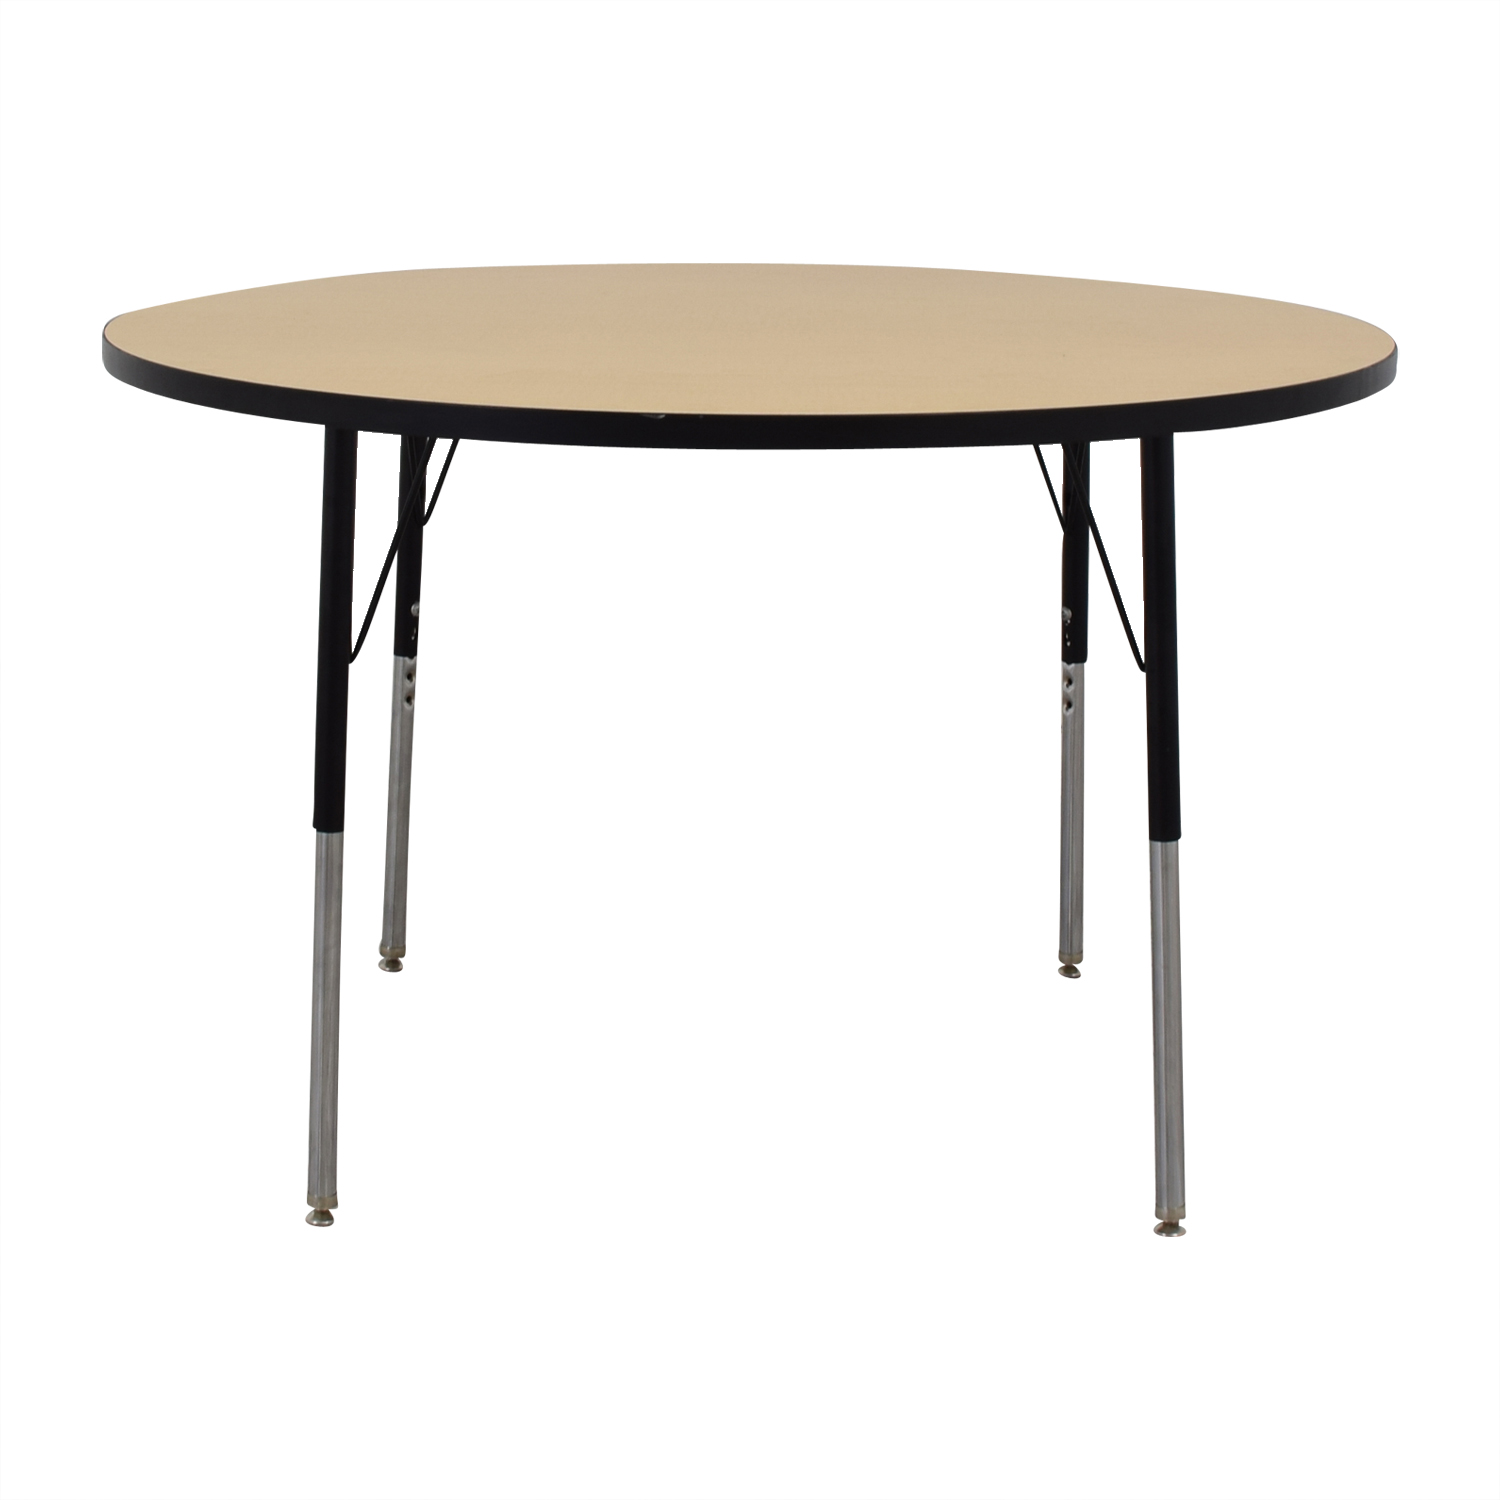 Round Activity Table / Tables